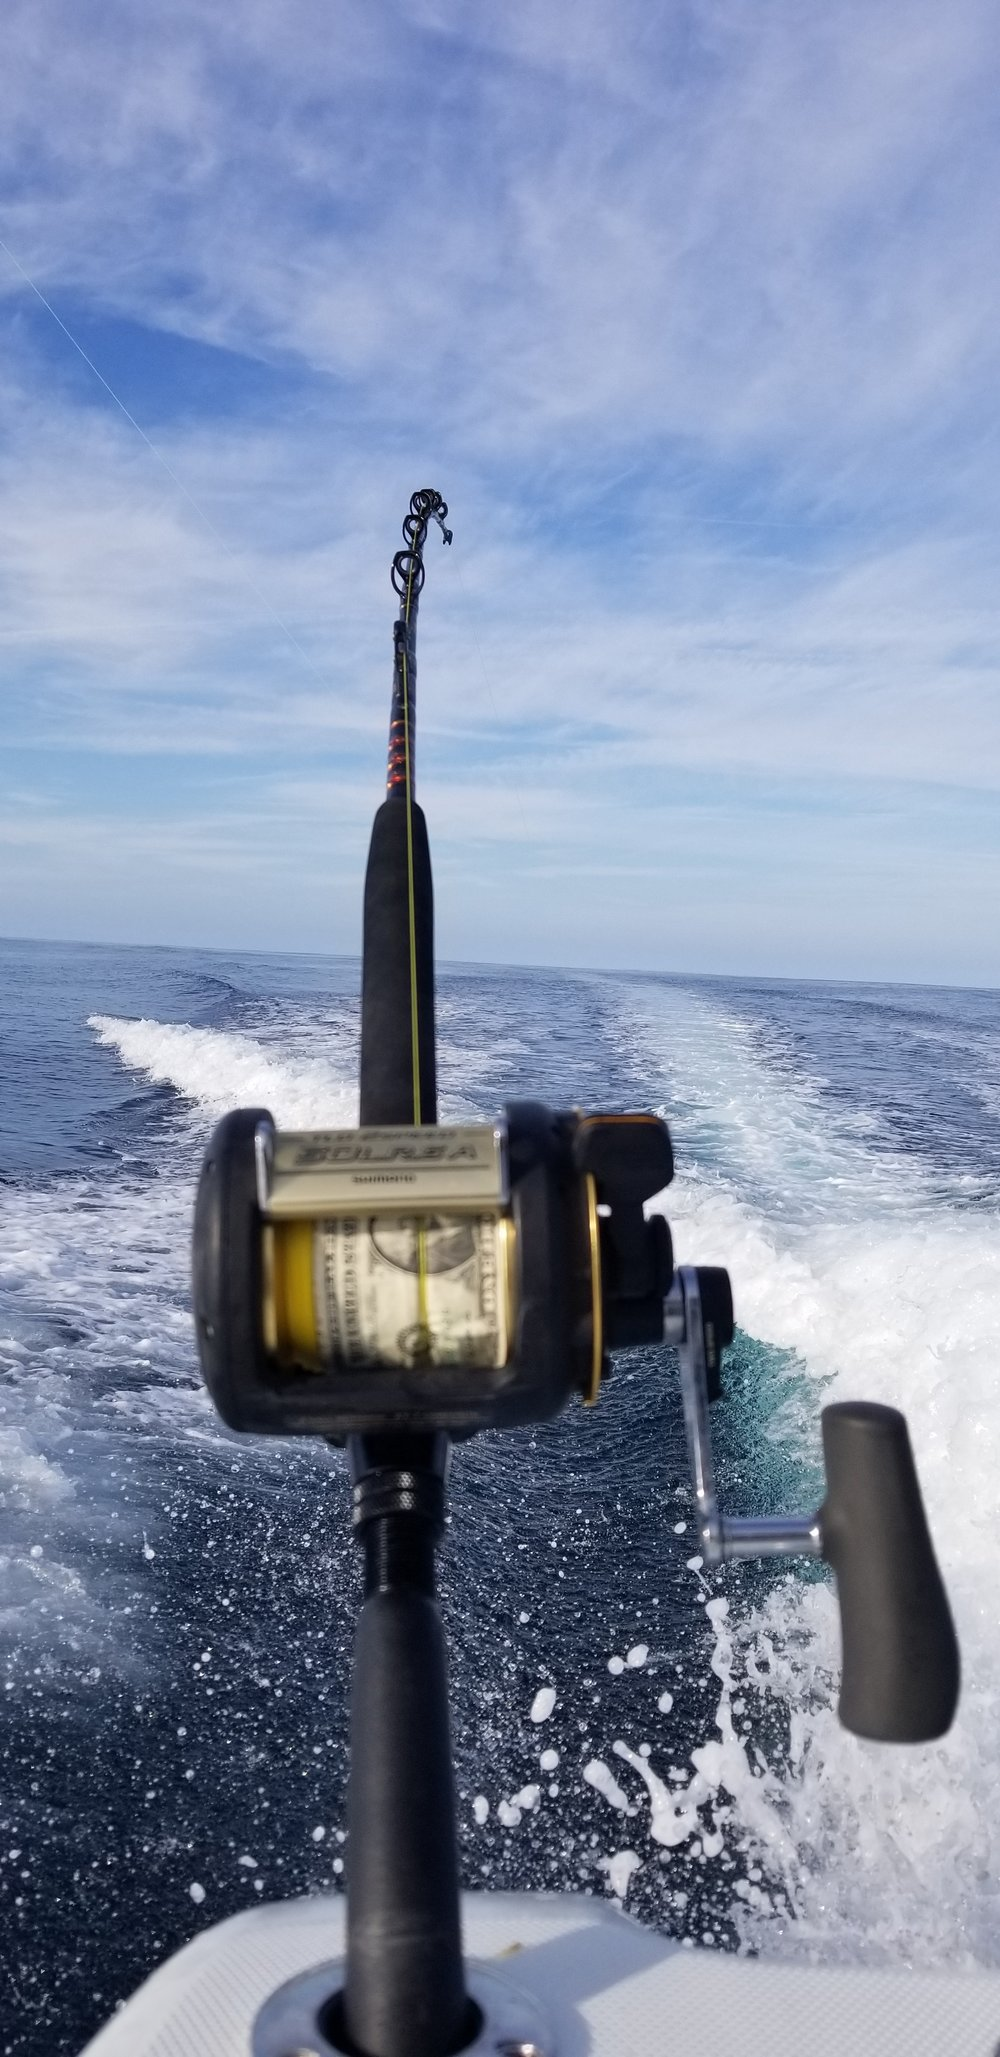 A fishing rod trolling offshore